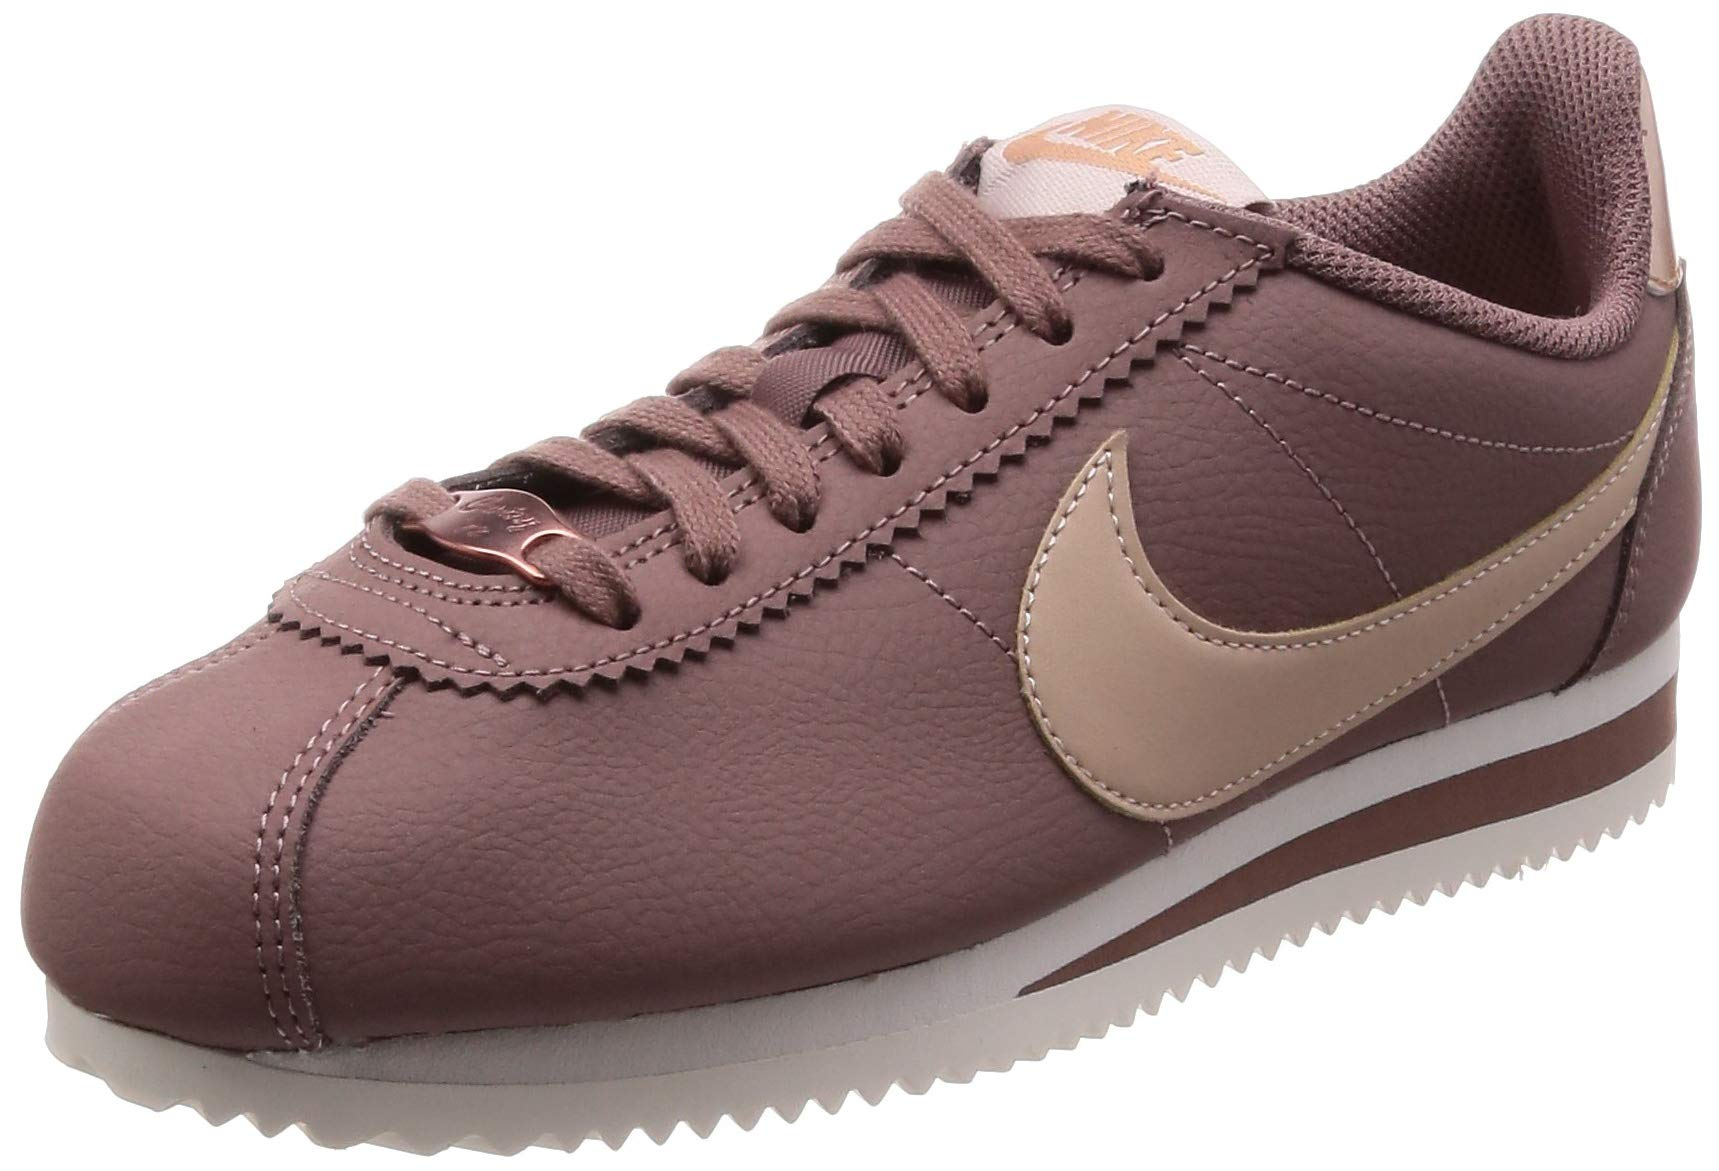 best loved d4aef d9203 Nike Women's Classic Cortez Sneakers (9, Smokey Mauve)